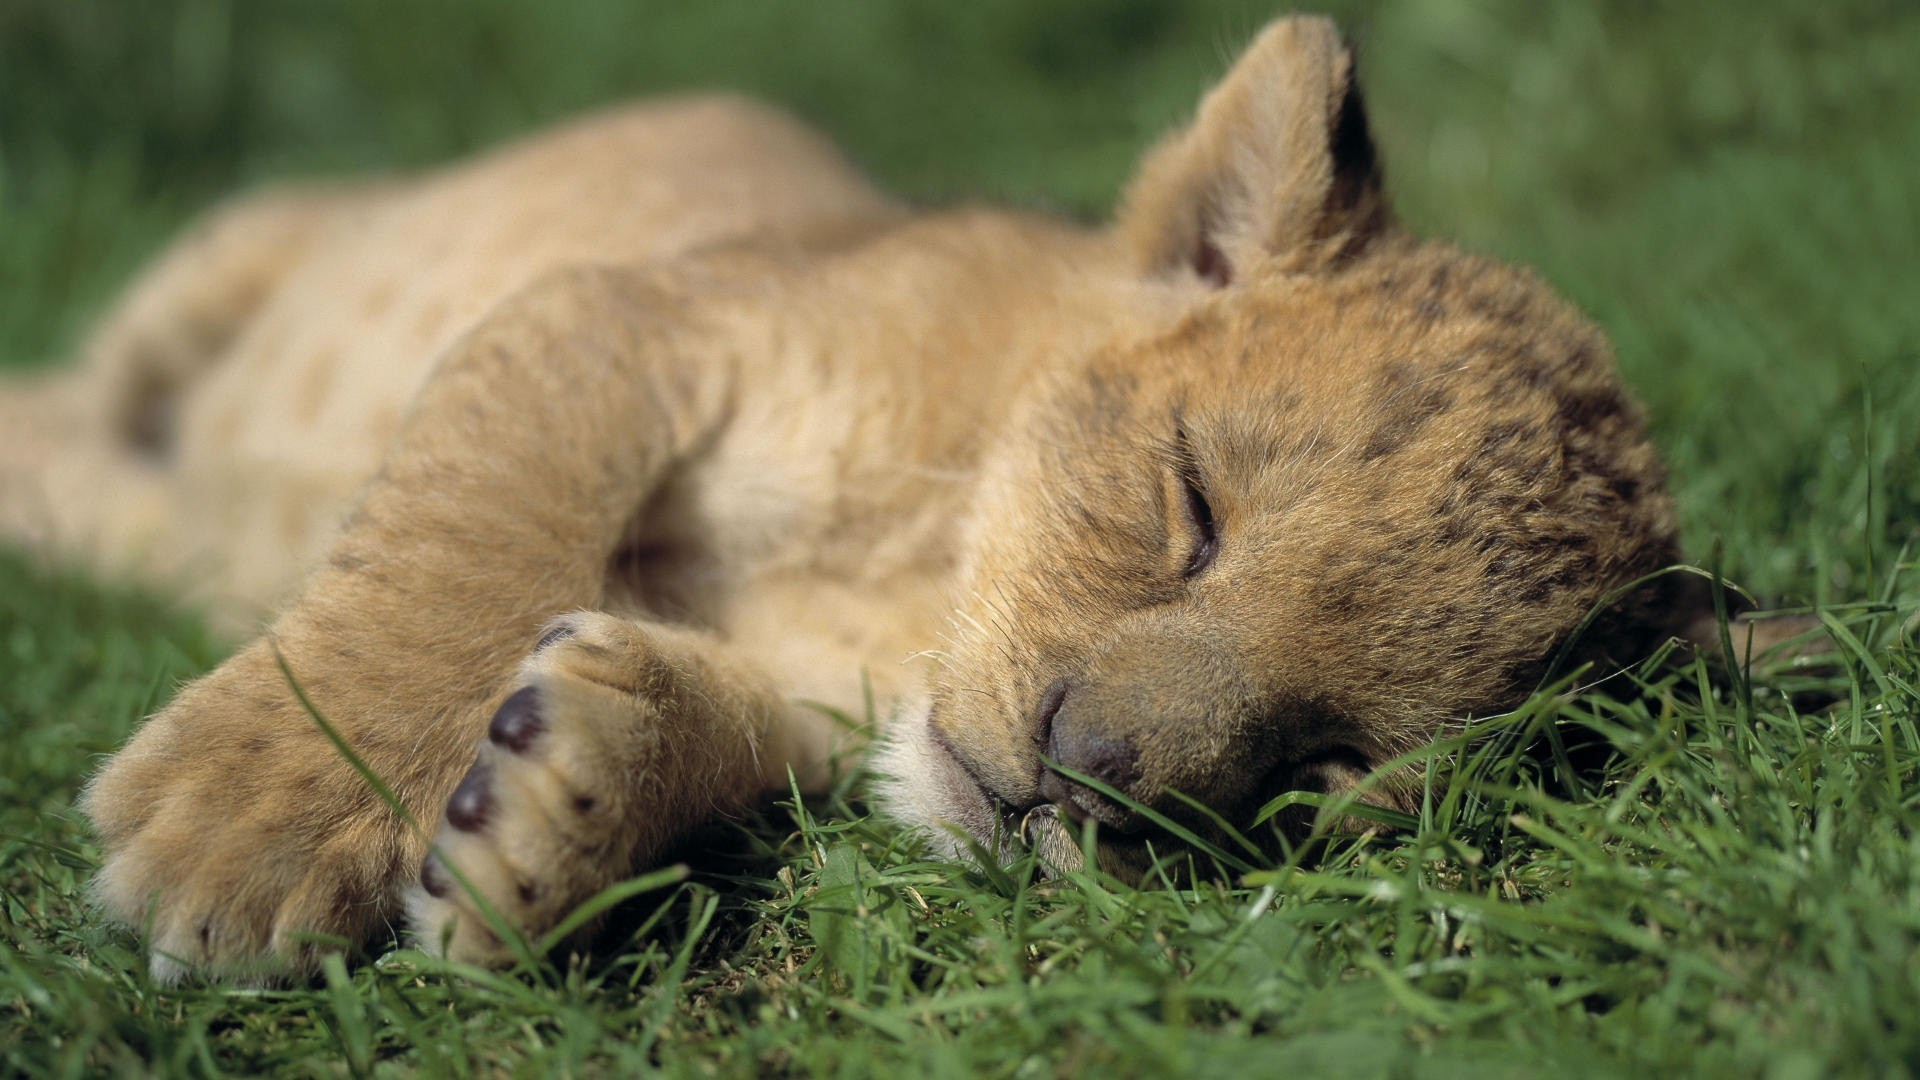 1920x1080 Cute Baby Lion Cub Sleeping Nicely HD Wallpaper.jpg